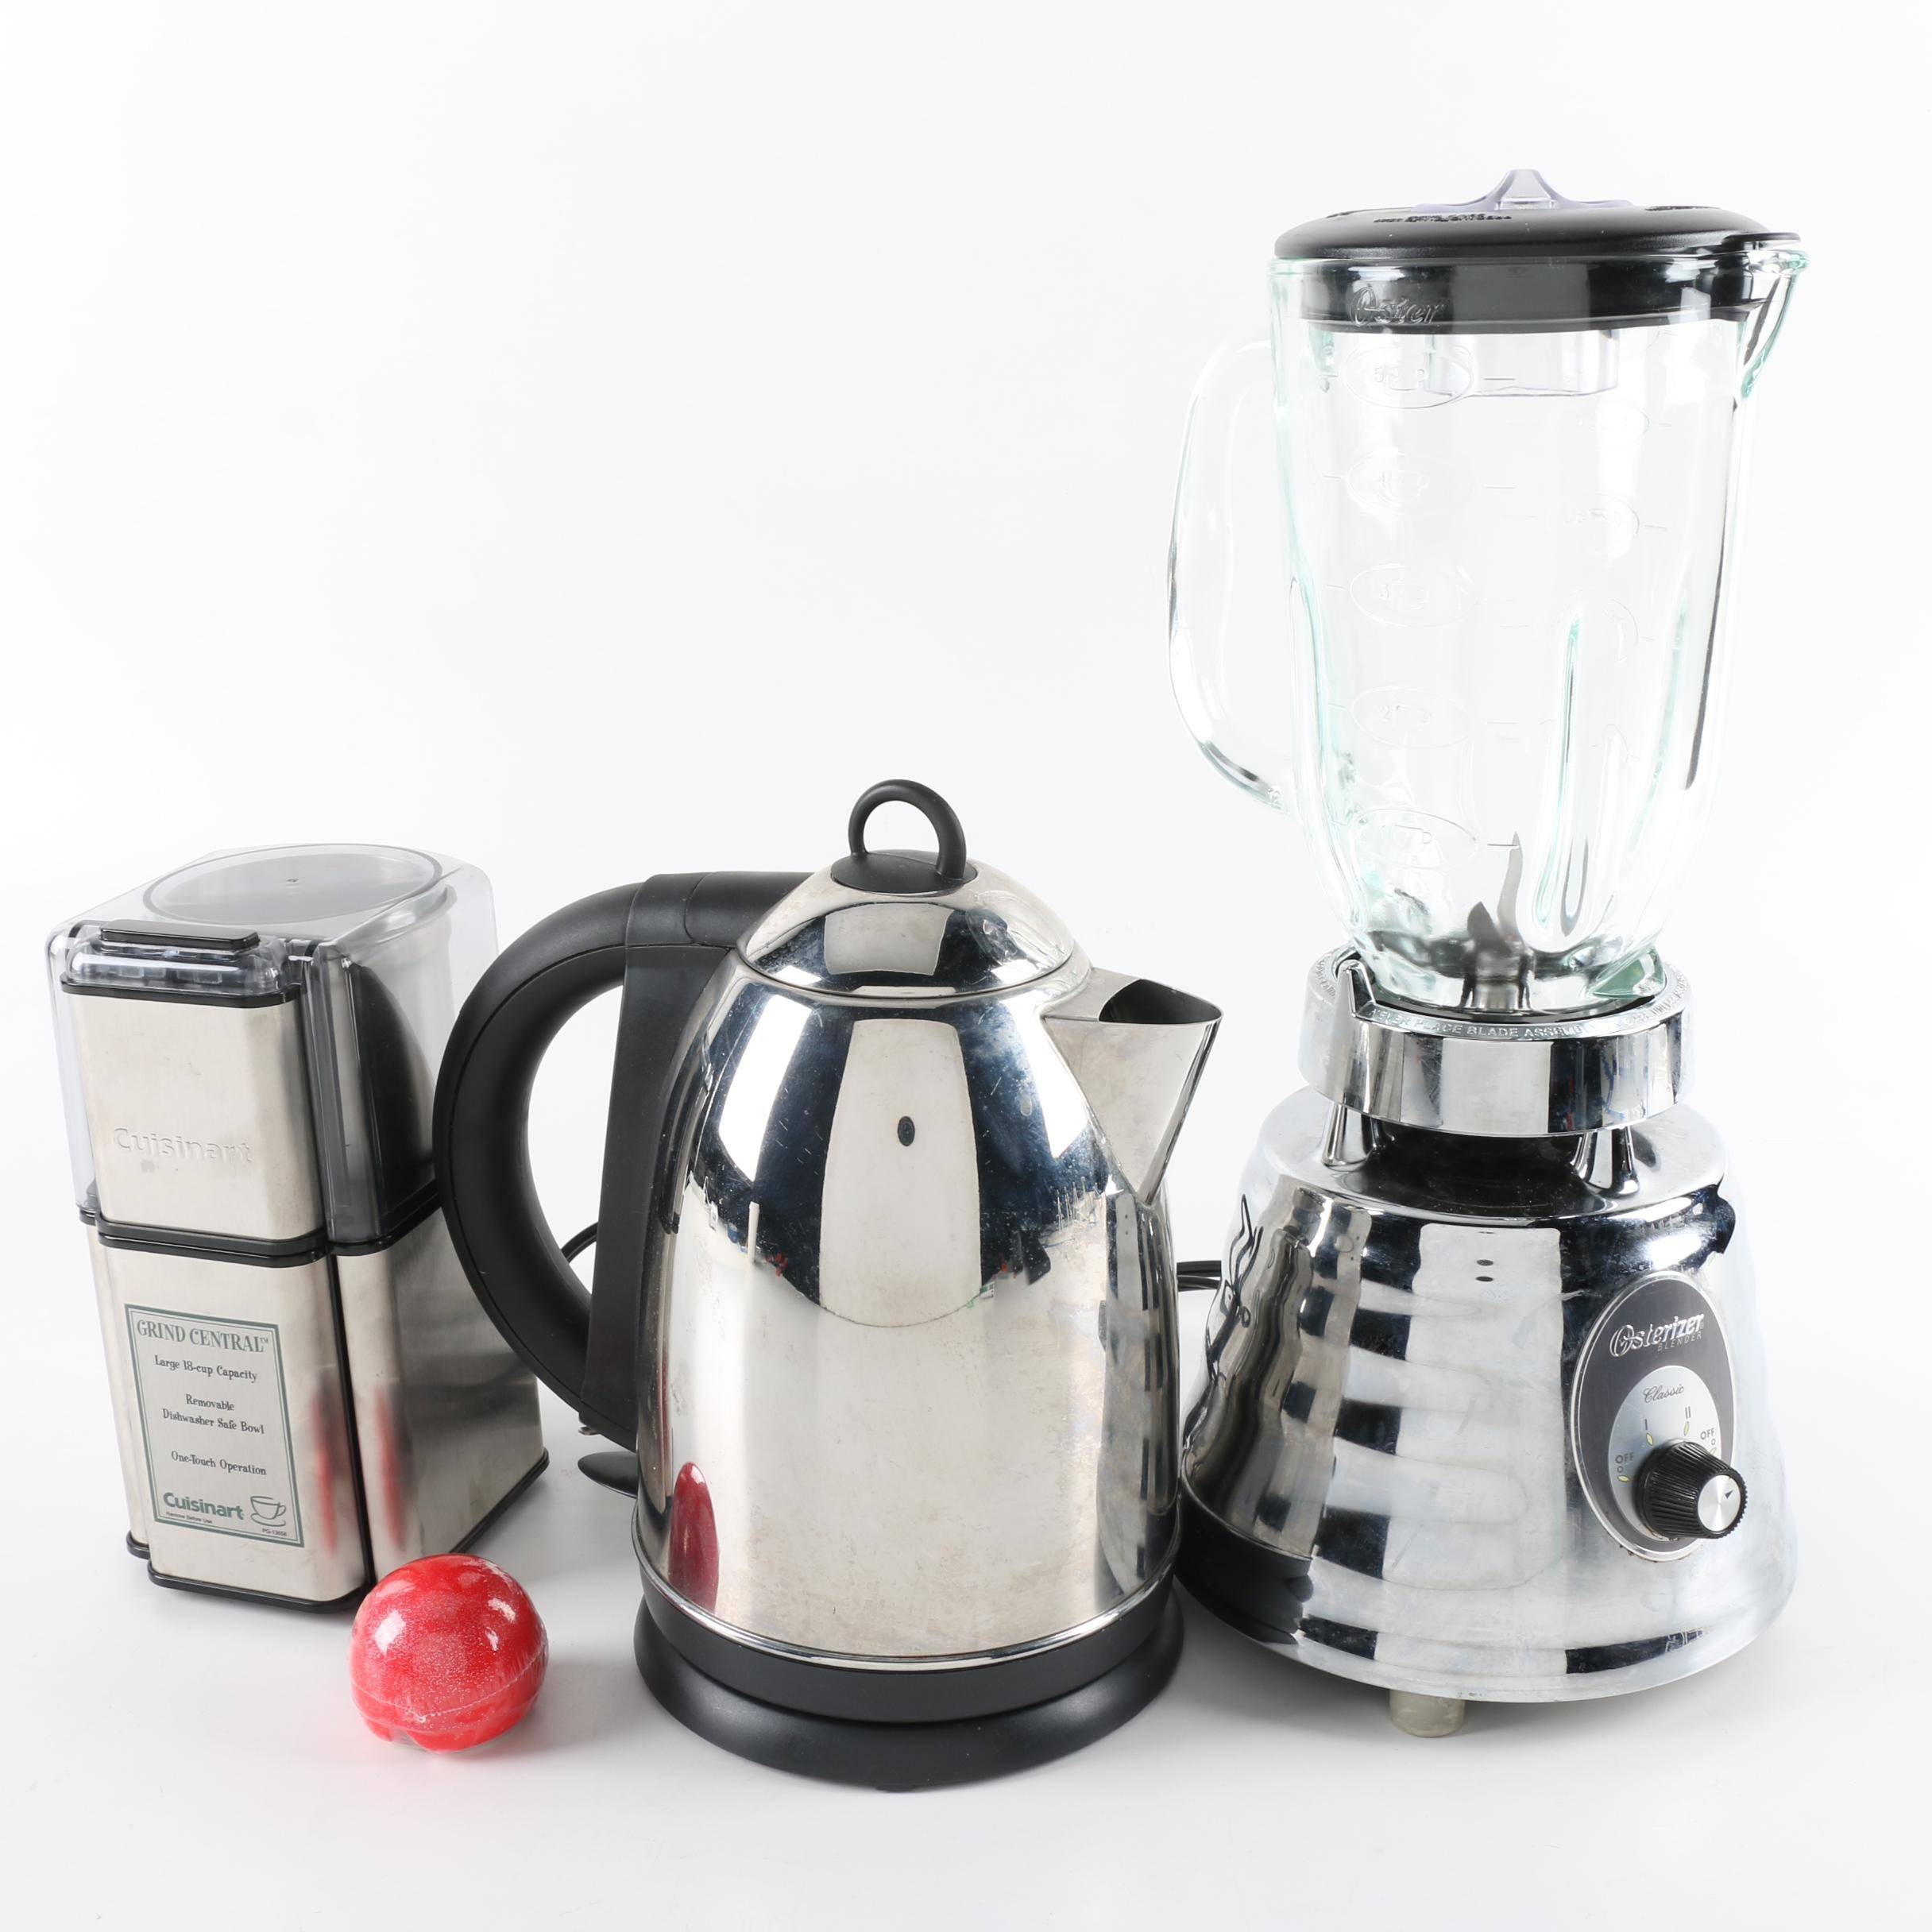 Cuisinart Coffee Grinder and Other Small Kitchen Appliances